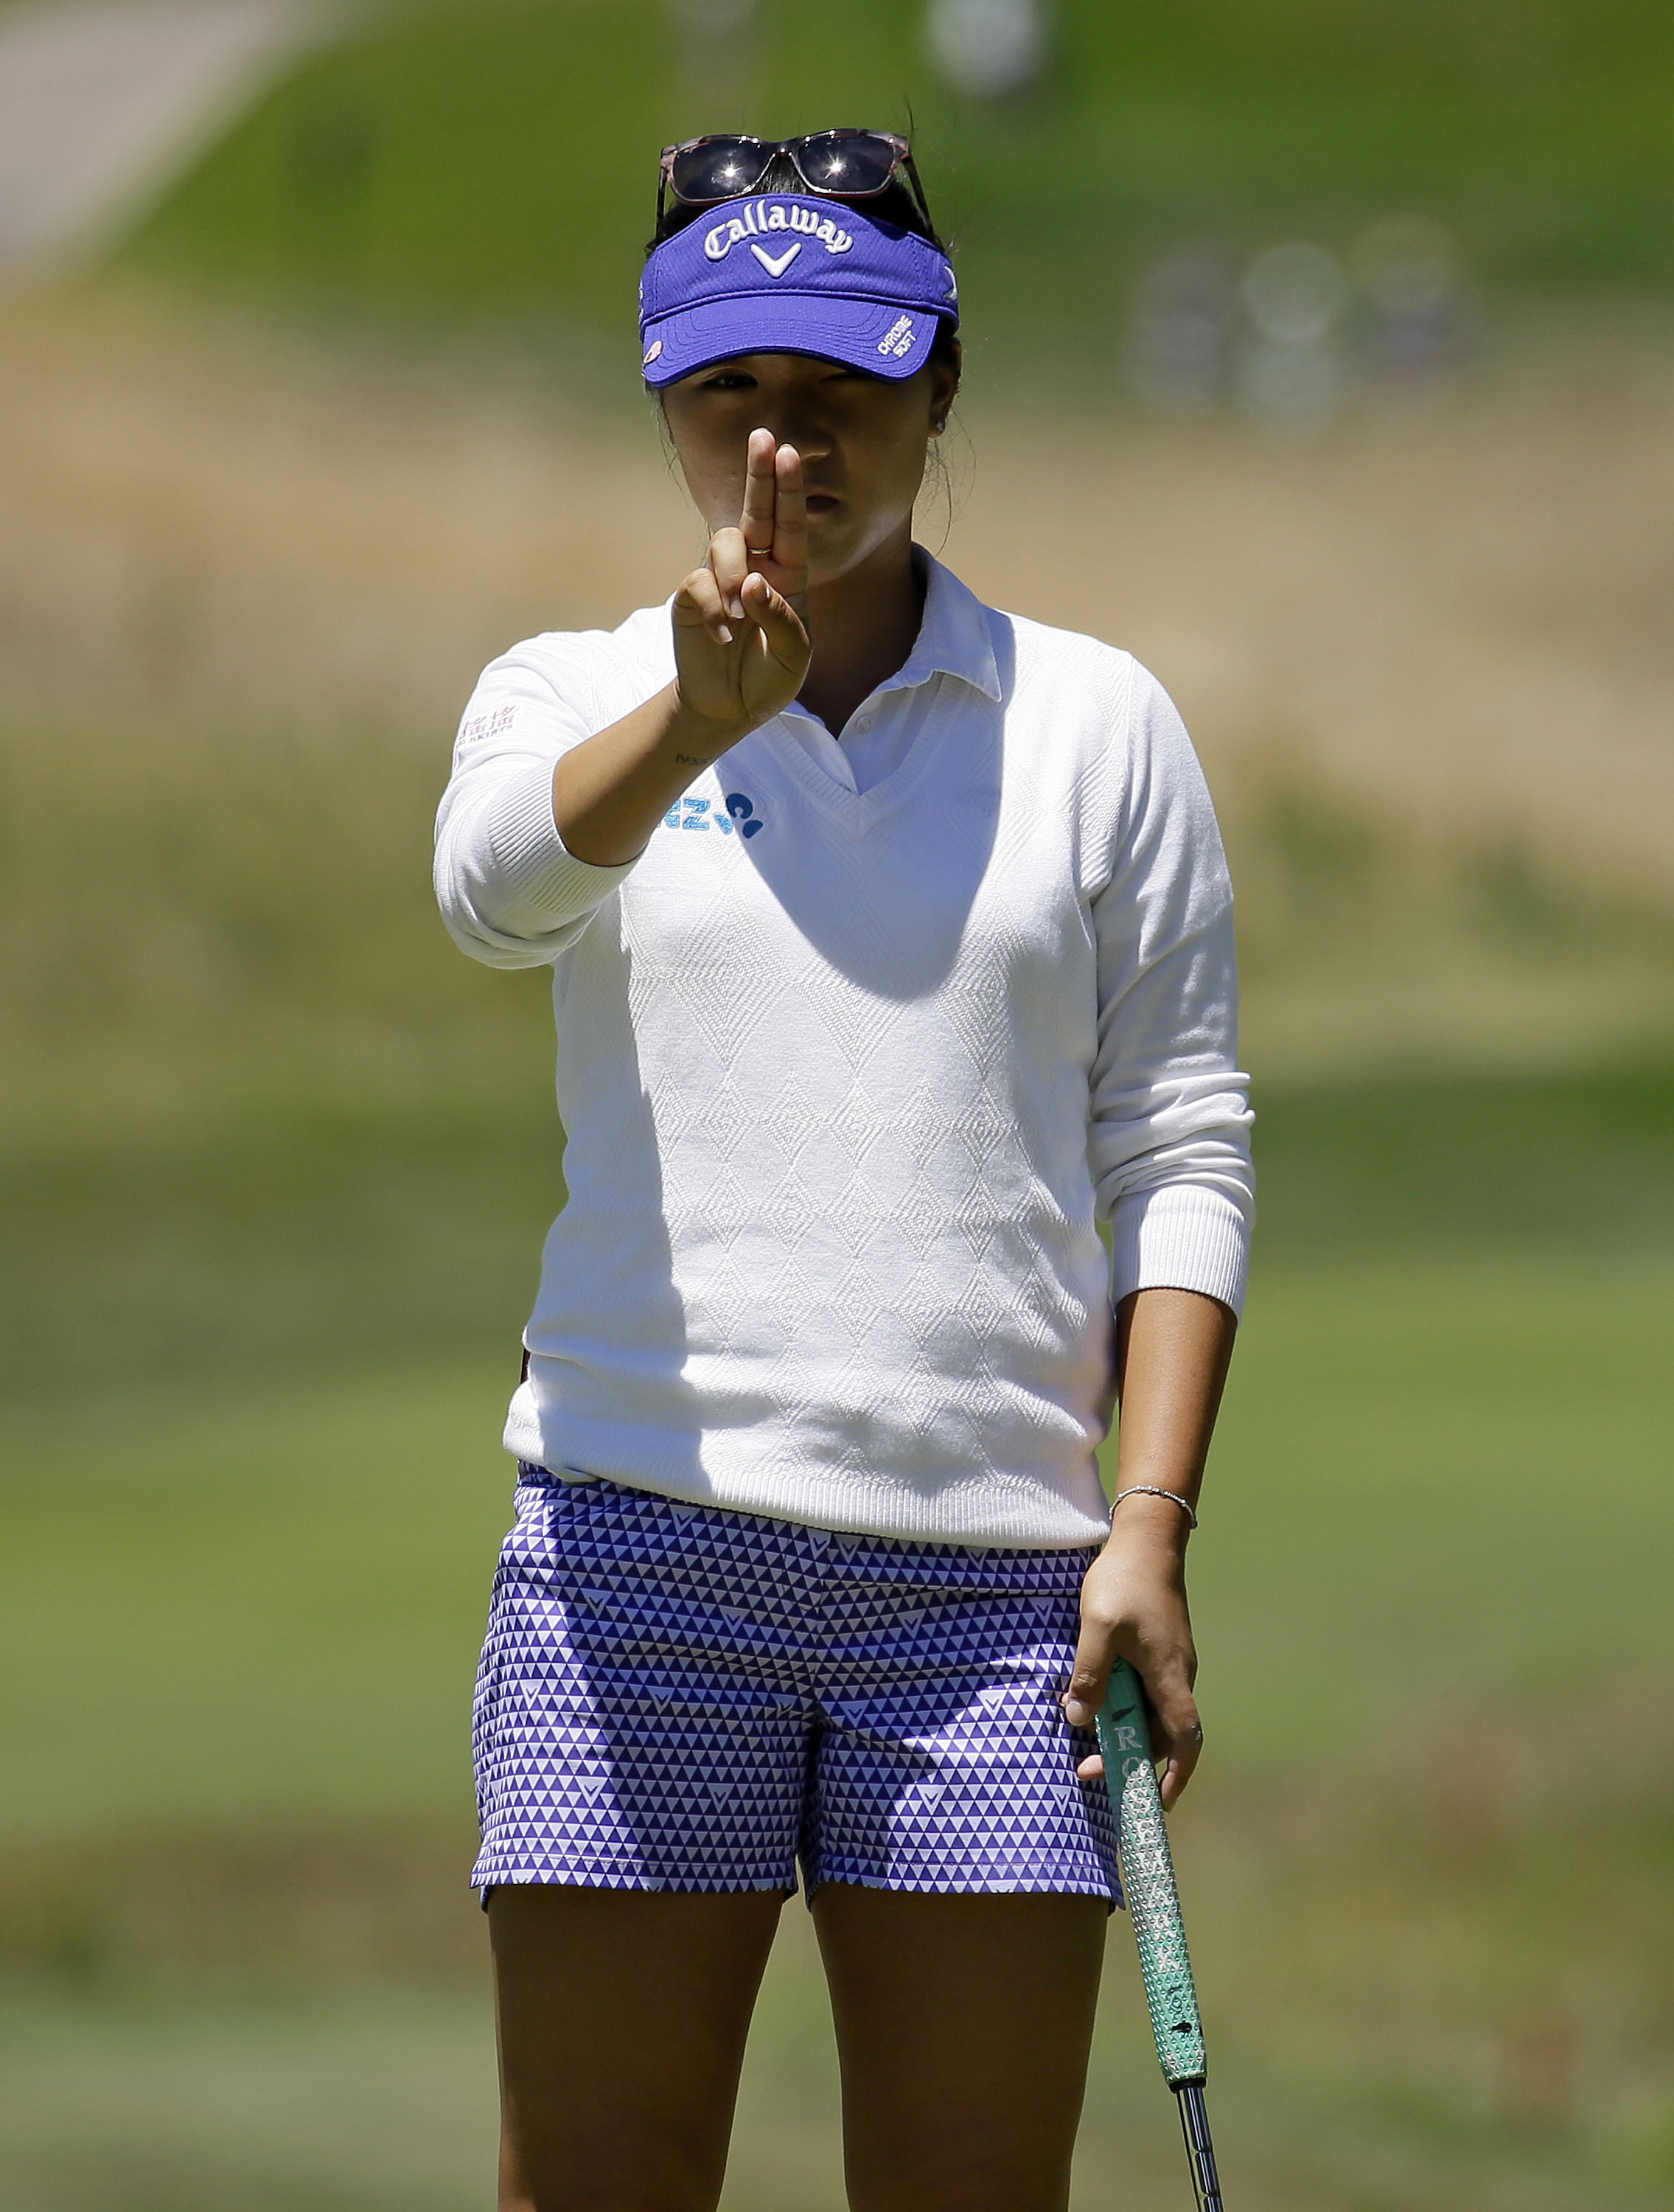 Lydia Ko, of New Zealand, lines up her putt on the sixth green during the final round of the U.S. Women's Open golf tournament at CordeValle, Sunday, July 10, 2016, in San Martin, Calif. (AP Photo/Eric Risberg)